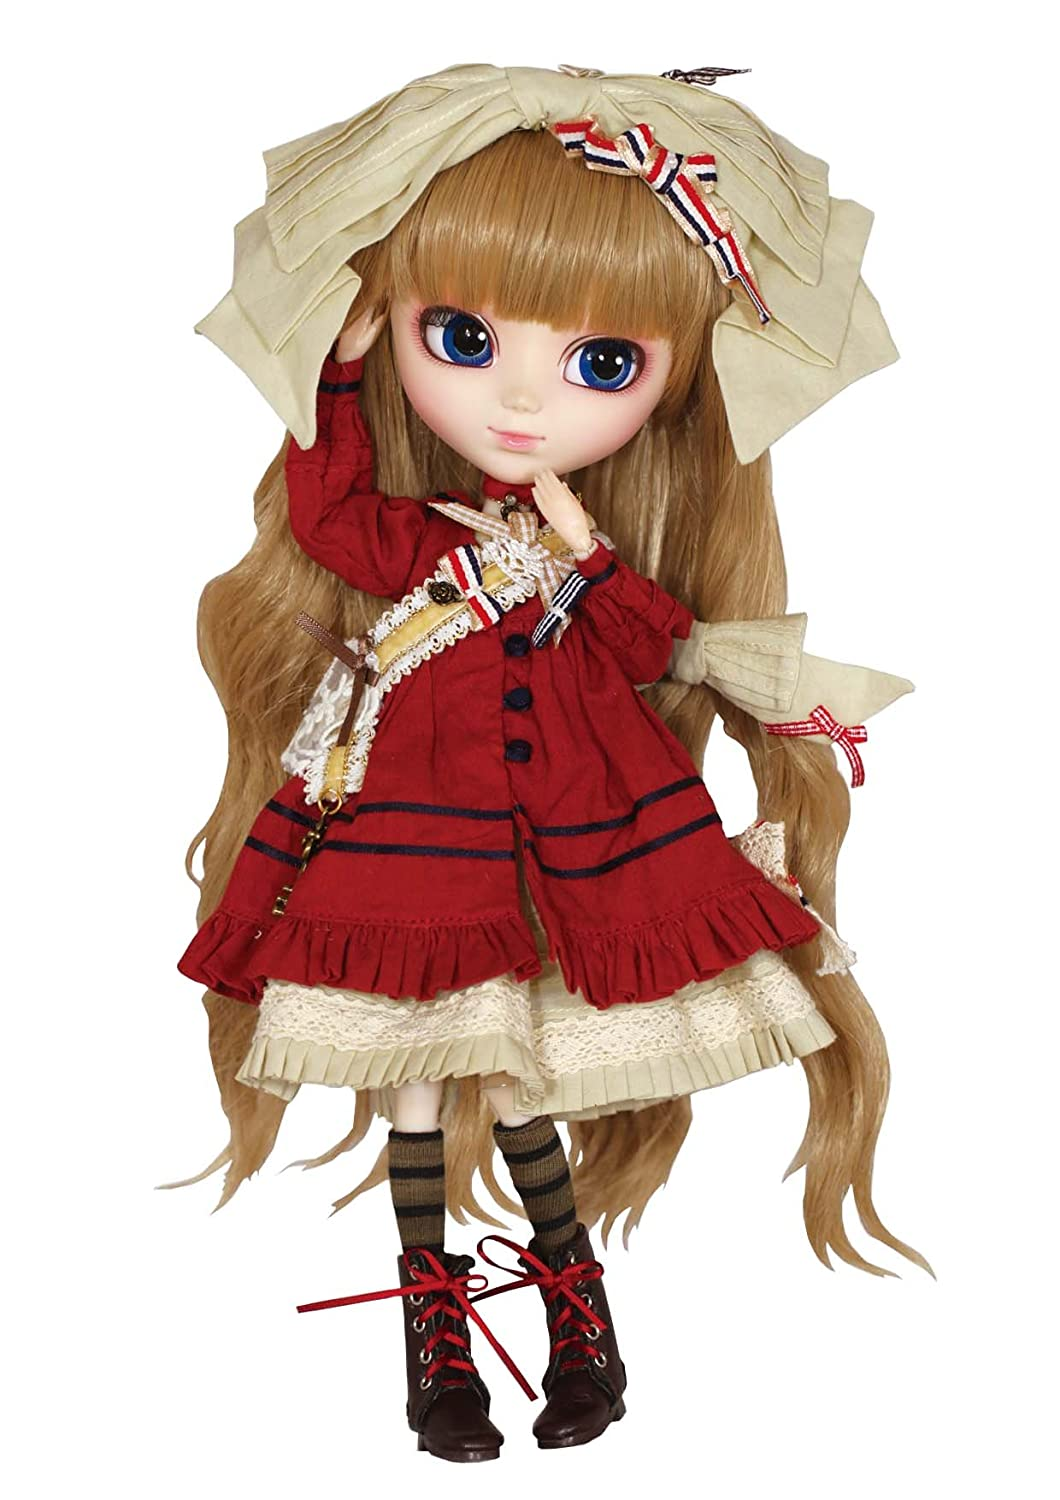 Pullip Dolls Amazon Pullip Dolls Nostalgia Version